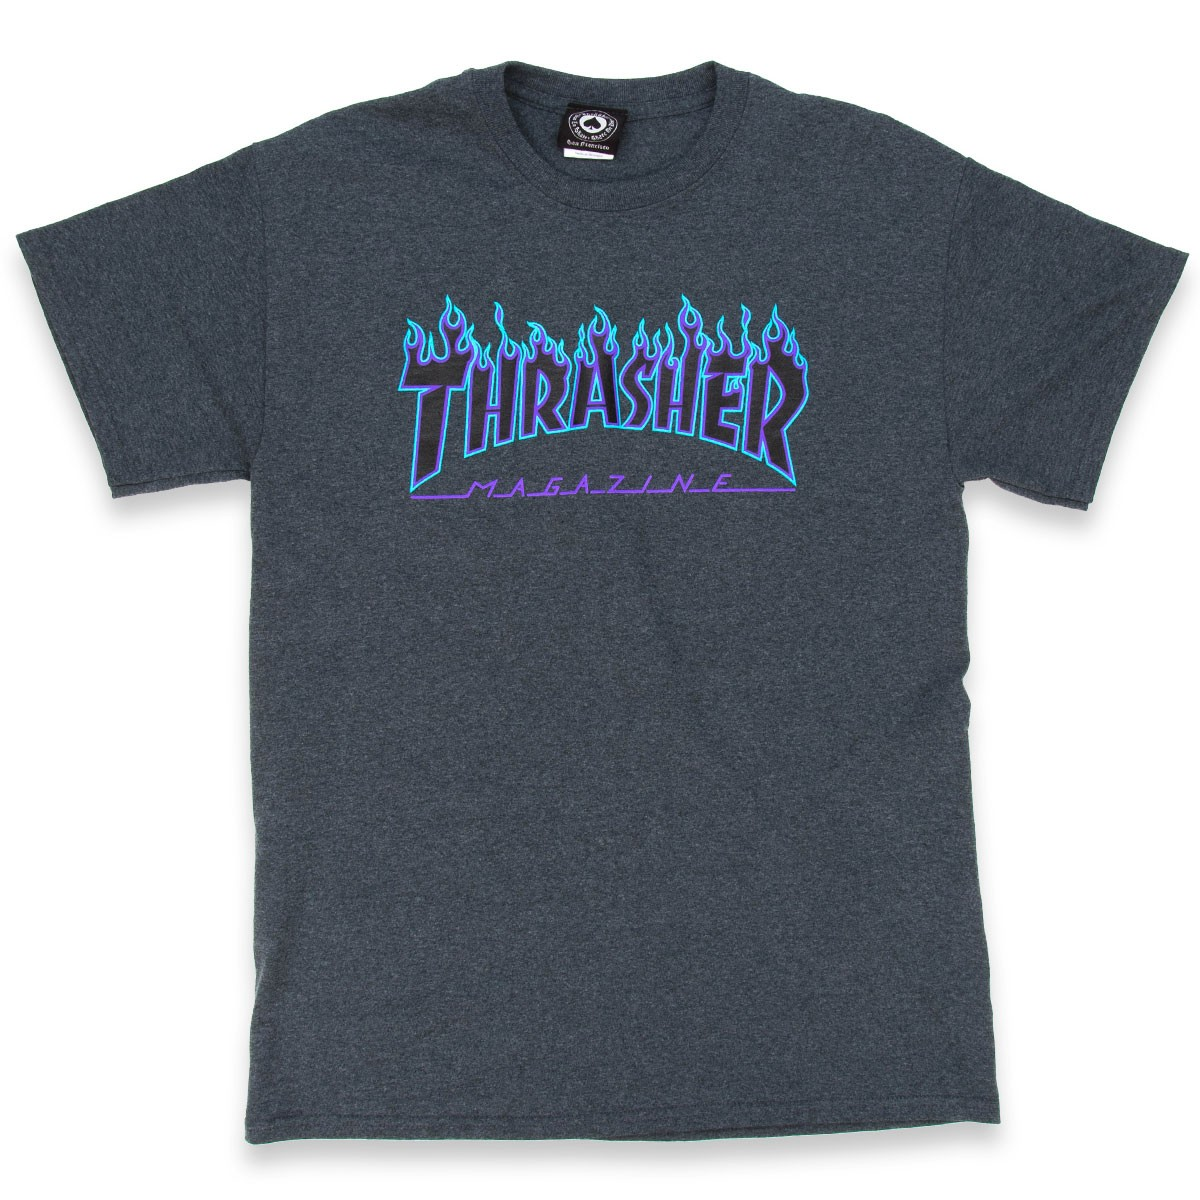 e3780f238de7 thrasher-flame-logo-t-shirt-dark-heather-1.1506671601.jpg